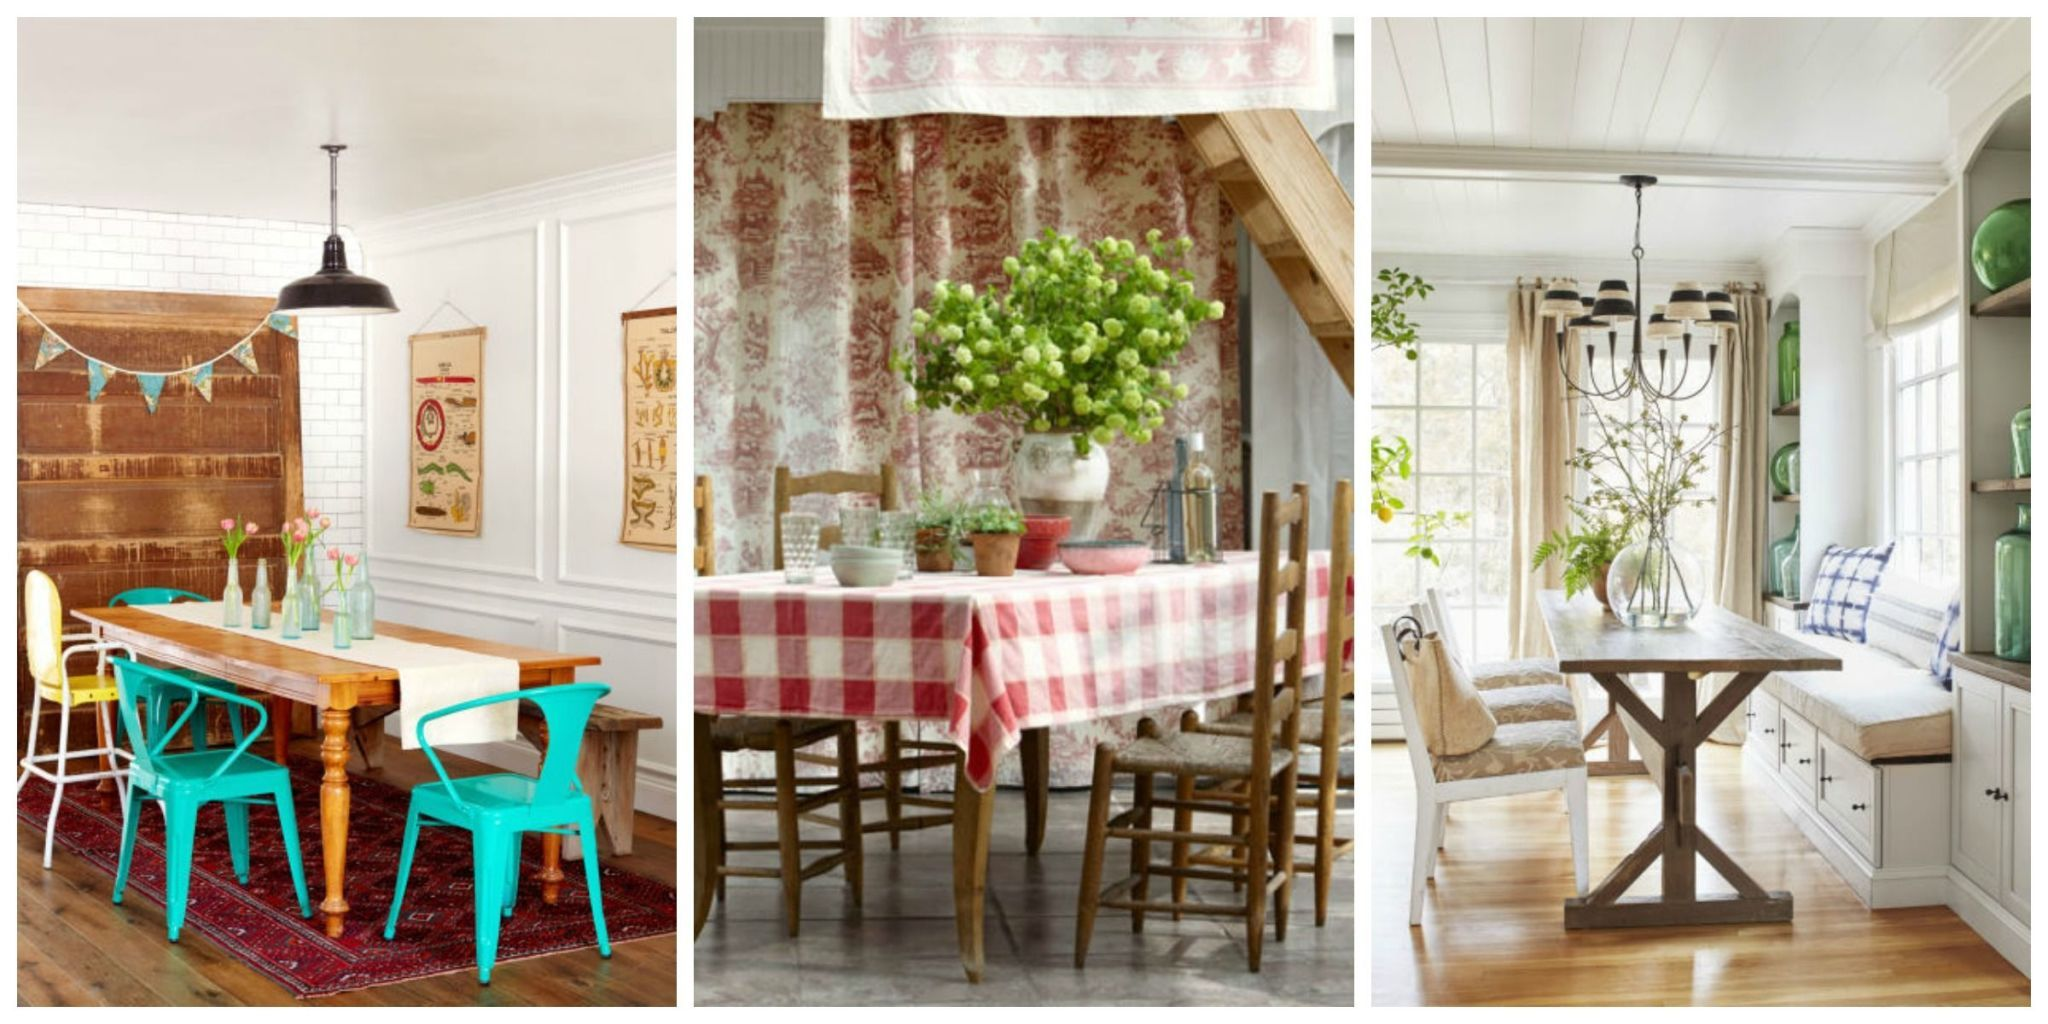 Merveilleux Our Favorite Ways To Transform Your Dining Room. By Country Living Staff